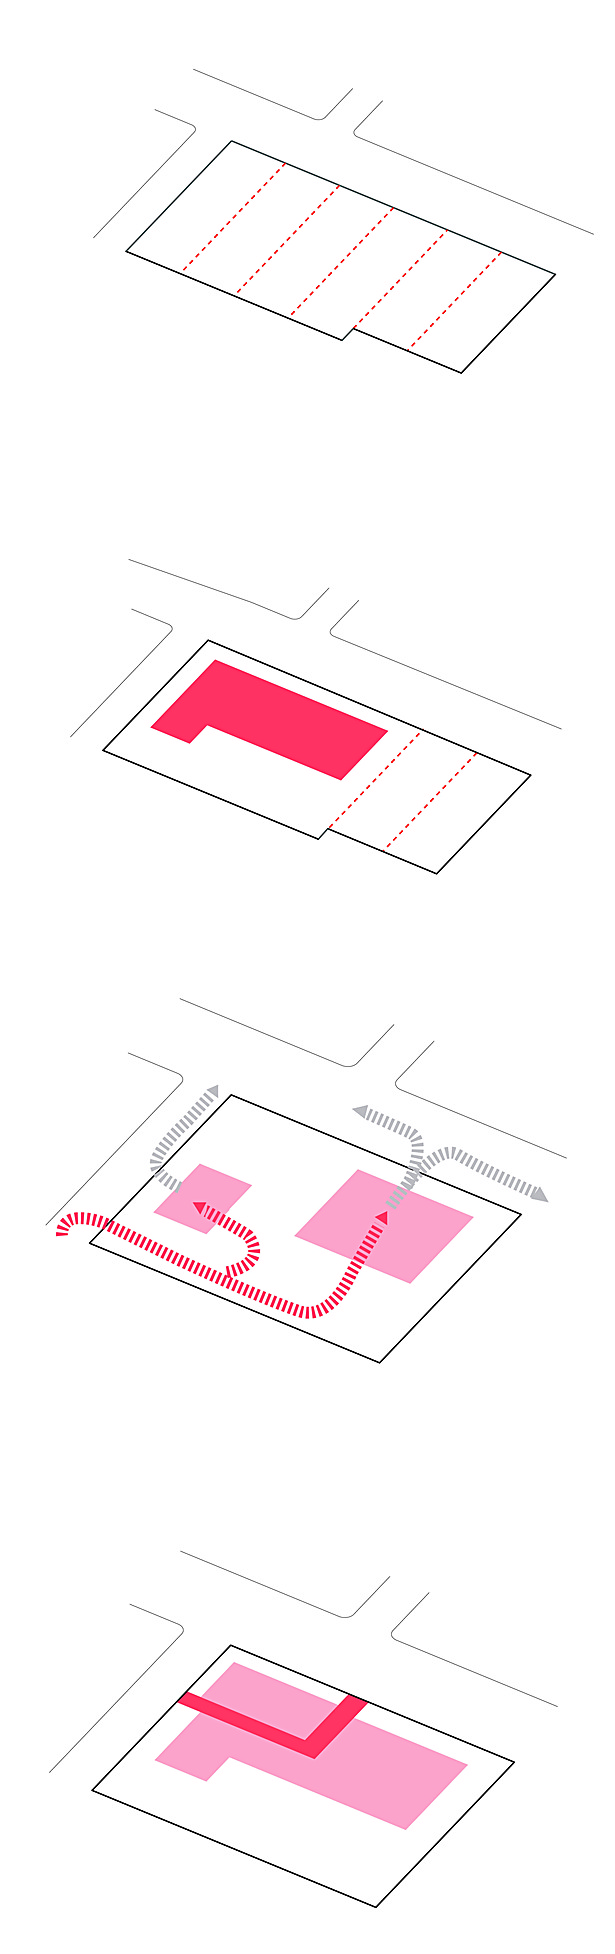 "Diagrams: Lot size 35,775 square feet, Fire station takes 4 lots, Fire truck circulation, ""L"" shape user circulation"